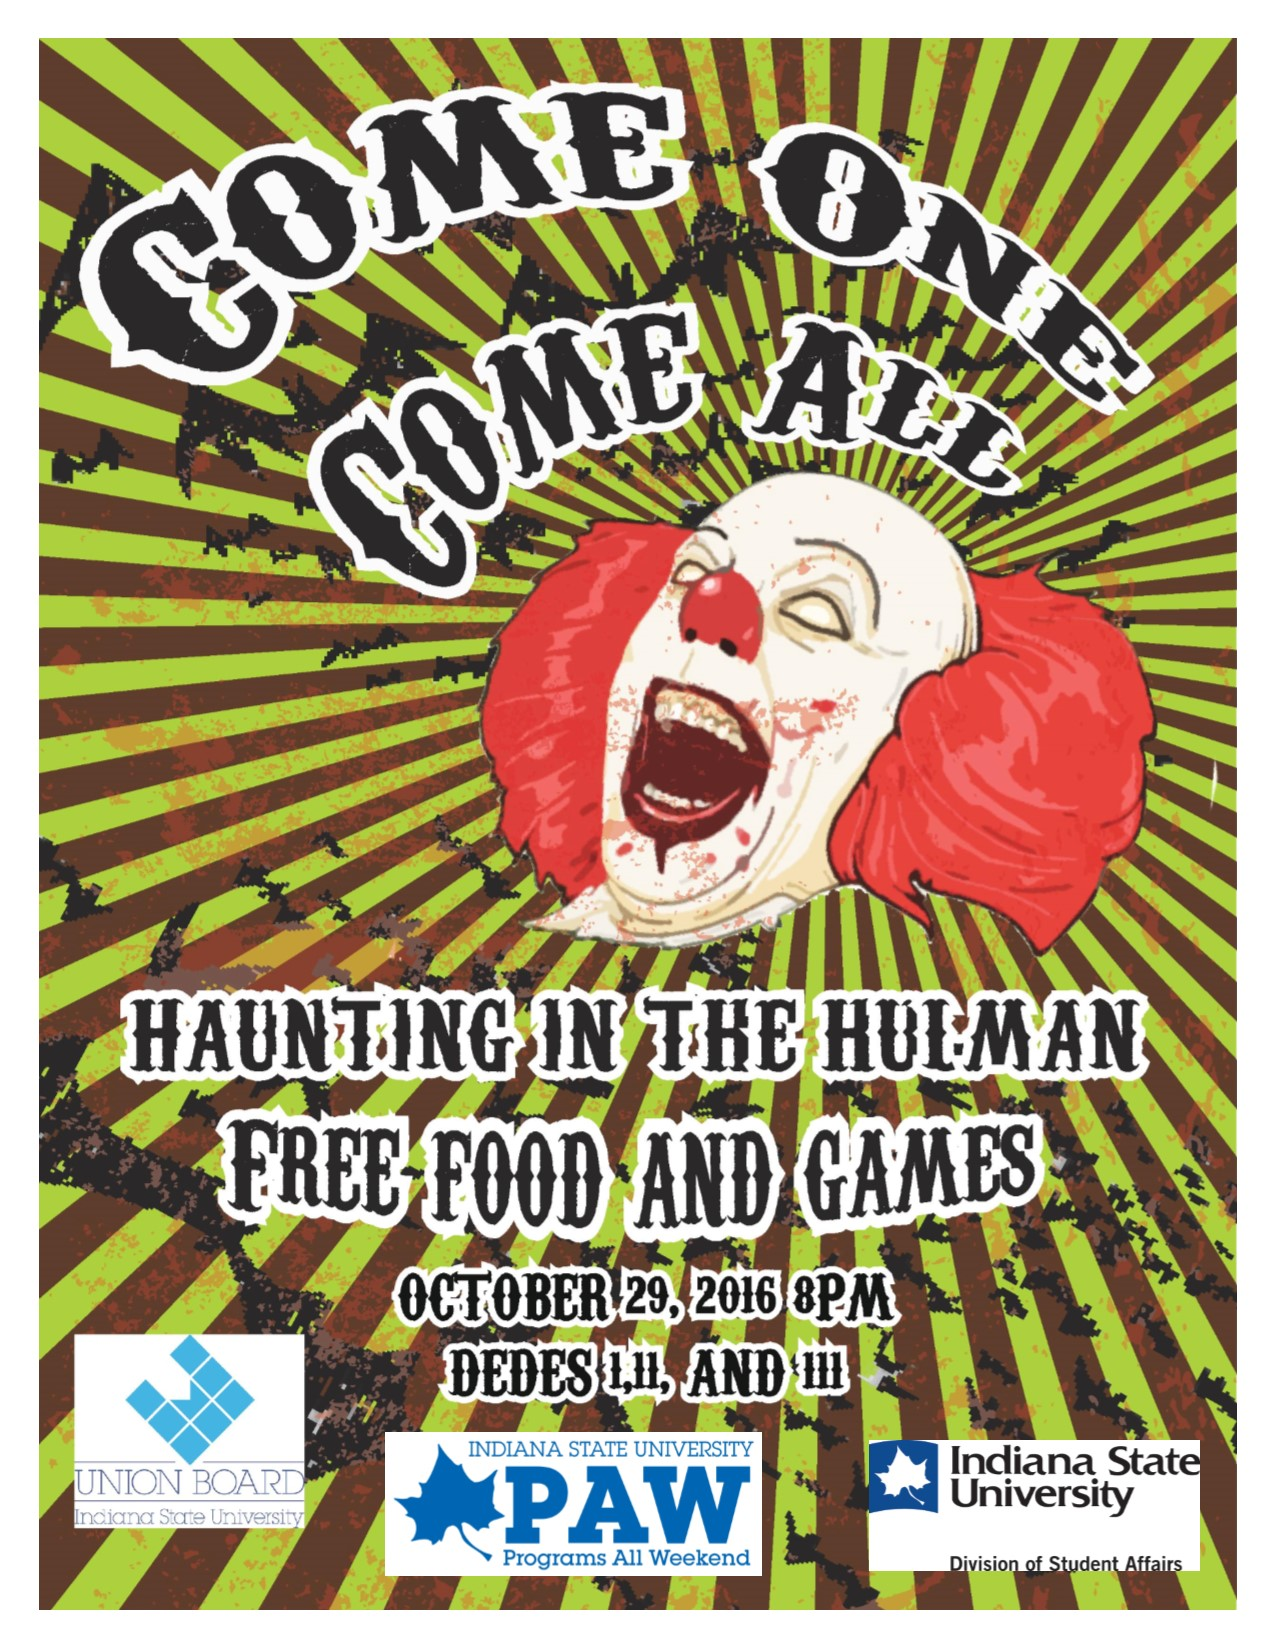 Haunted House Flyer sponsored by Union Board and PAW